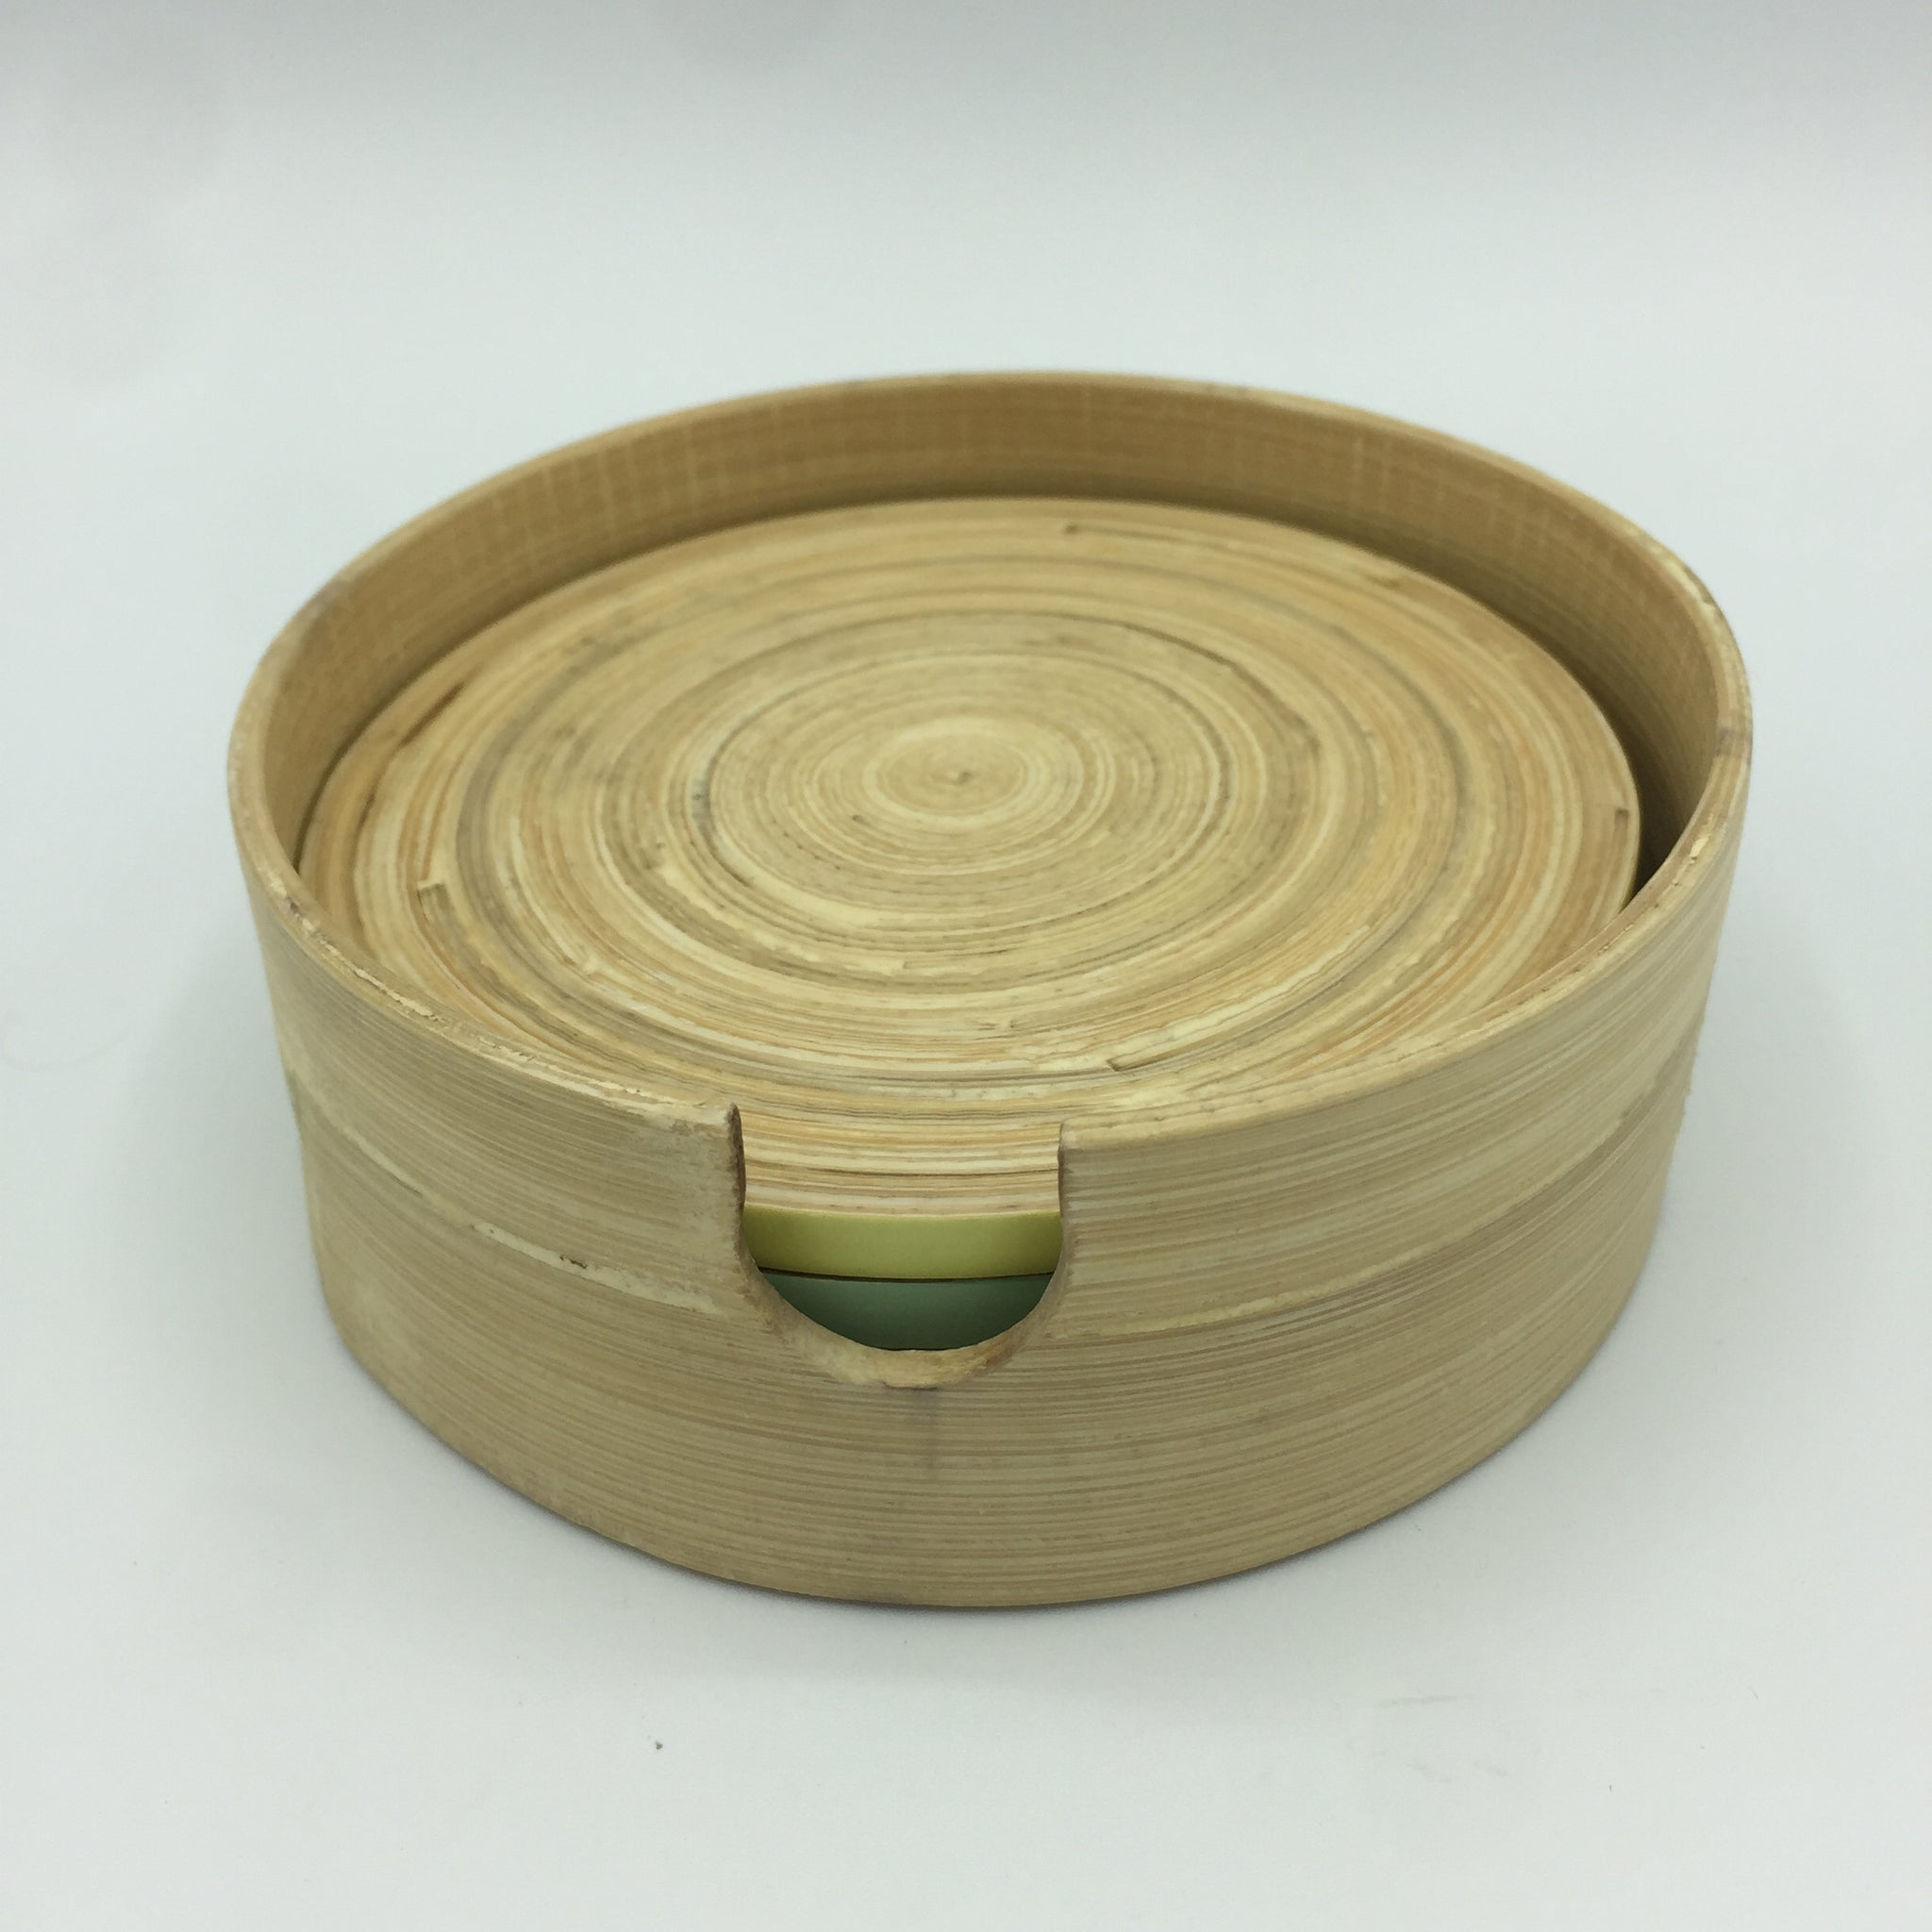 Set of 4 Bamboo Coasters